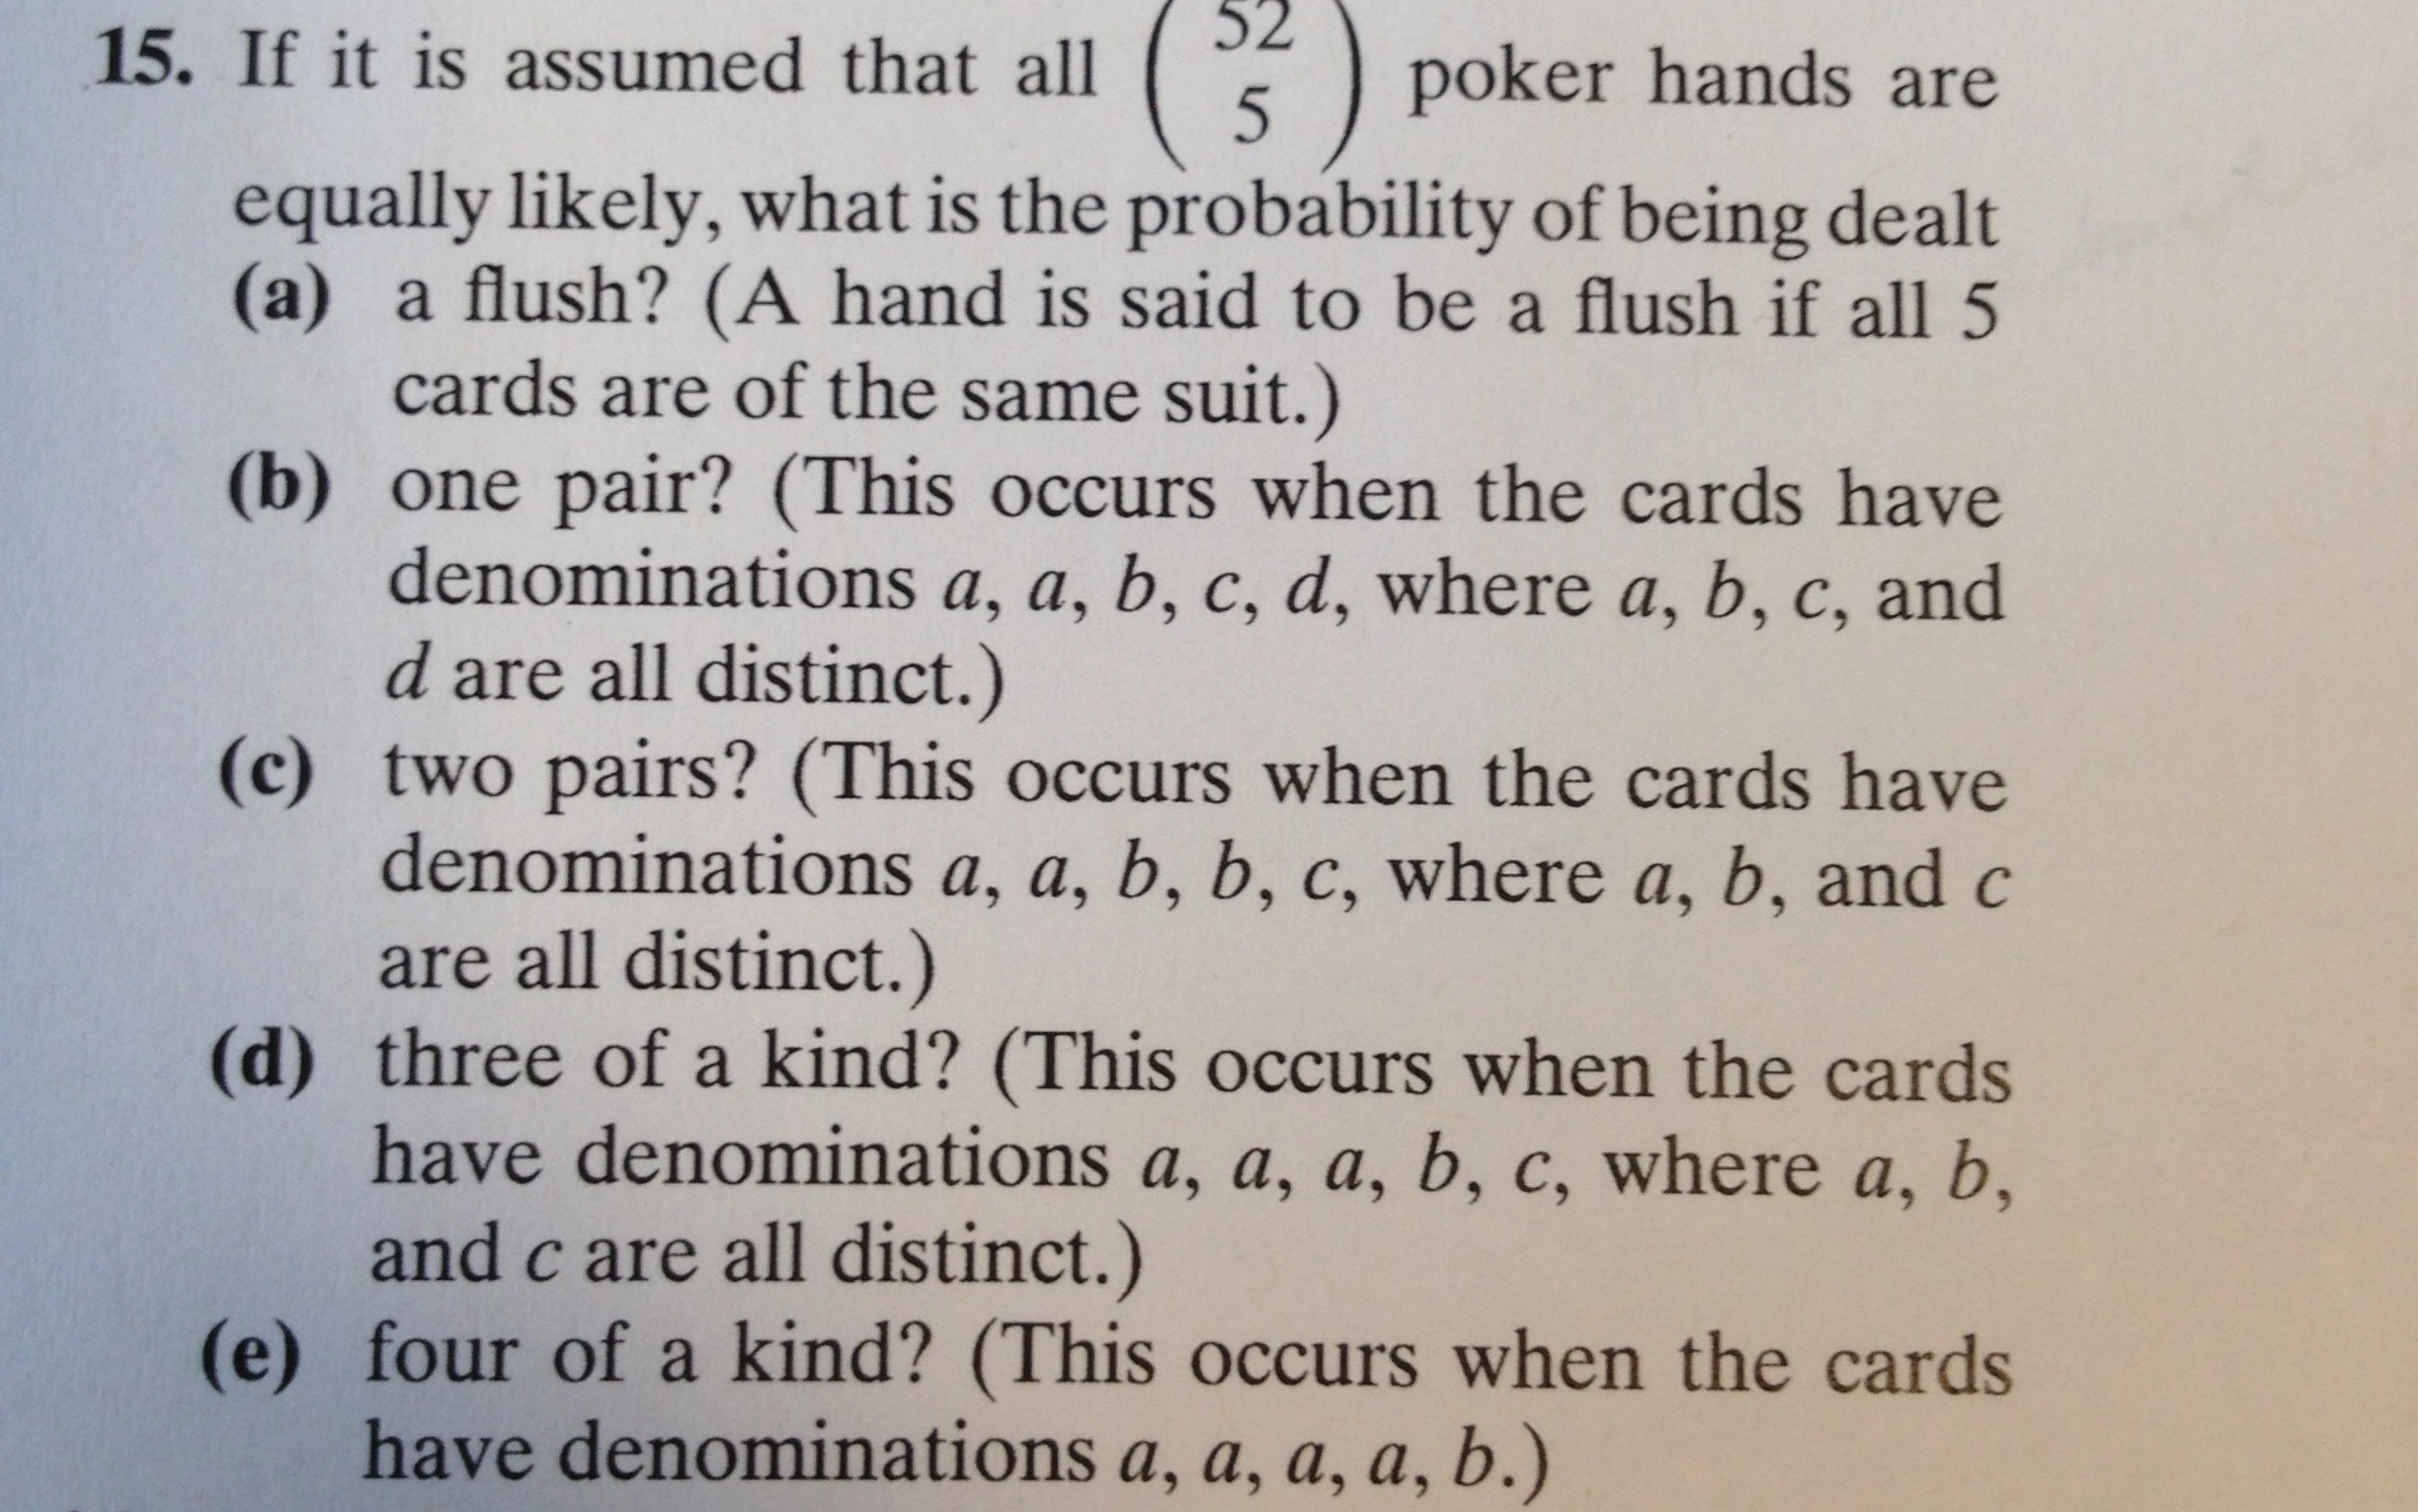 odds of being dealt a flush in poker